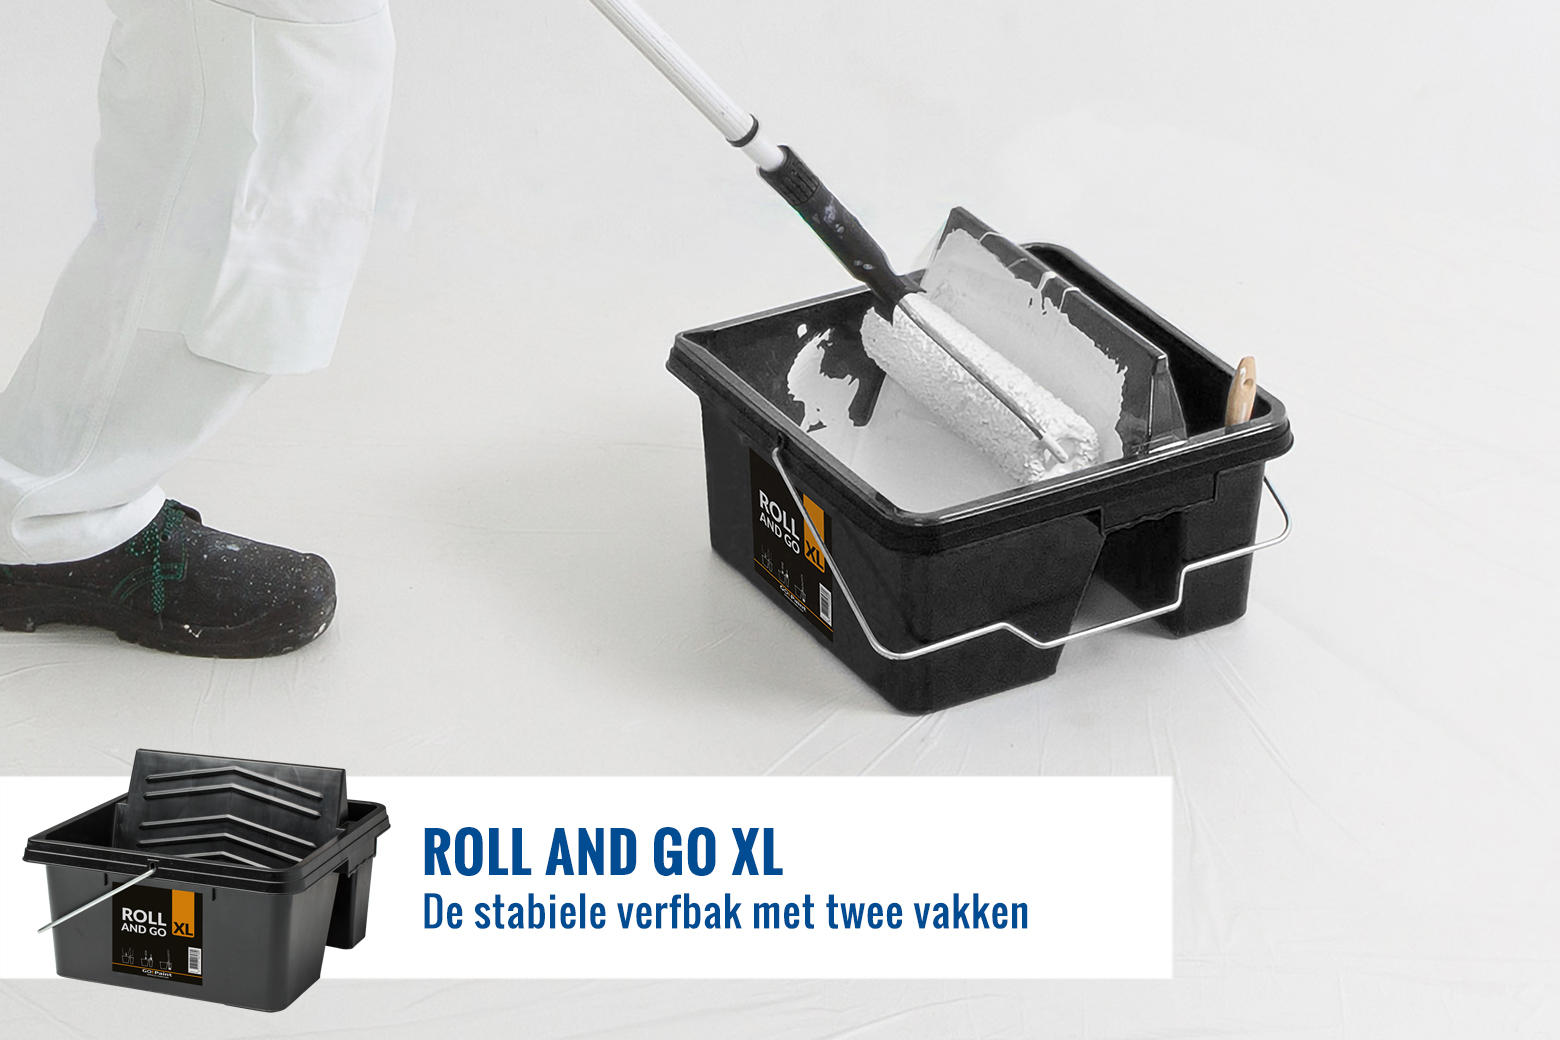 De Roll and Go XL is de stevigste verf rolbak die je kan kopen.